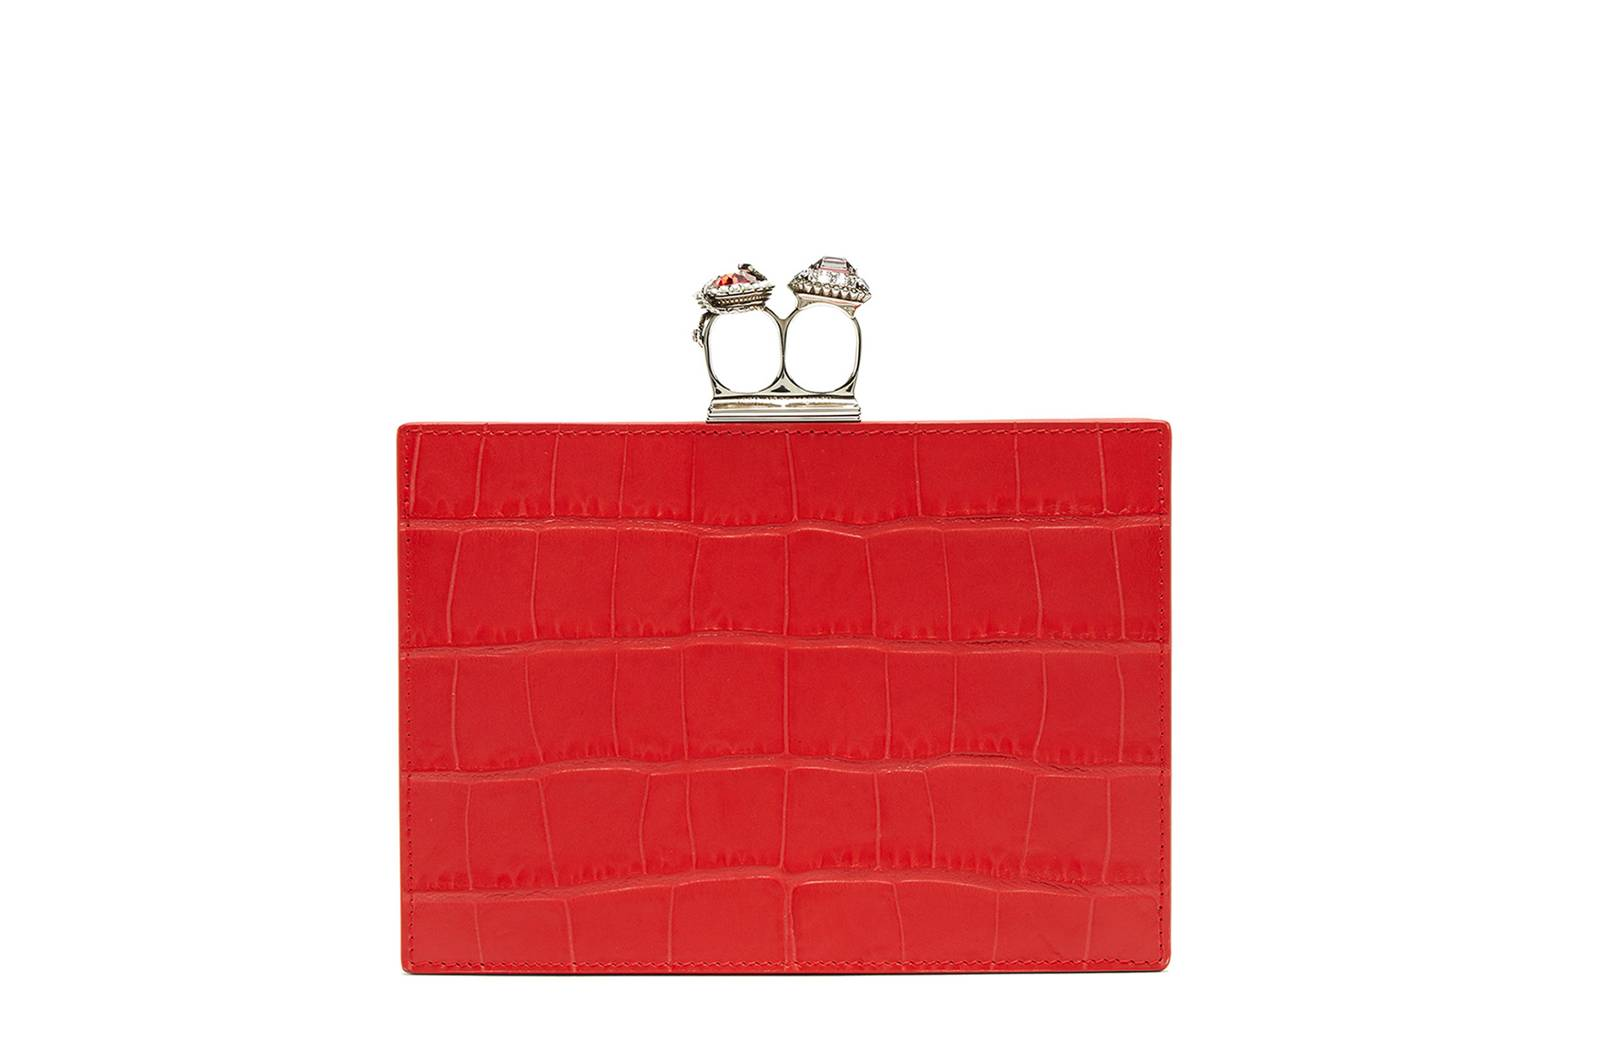 389e6ee9089434 The Best Red Handbags To Wear Now   British Vogue